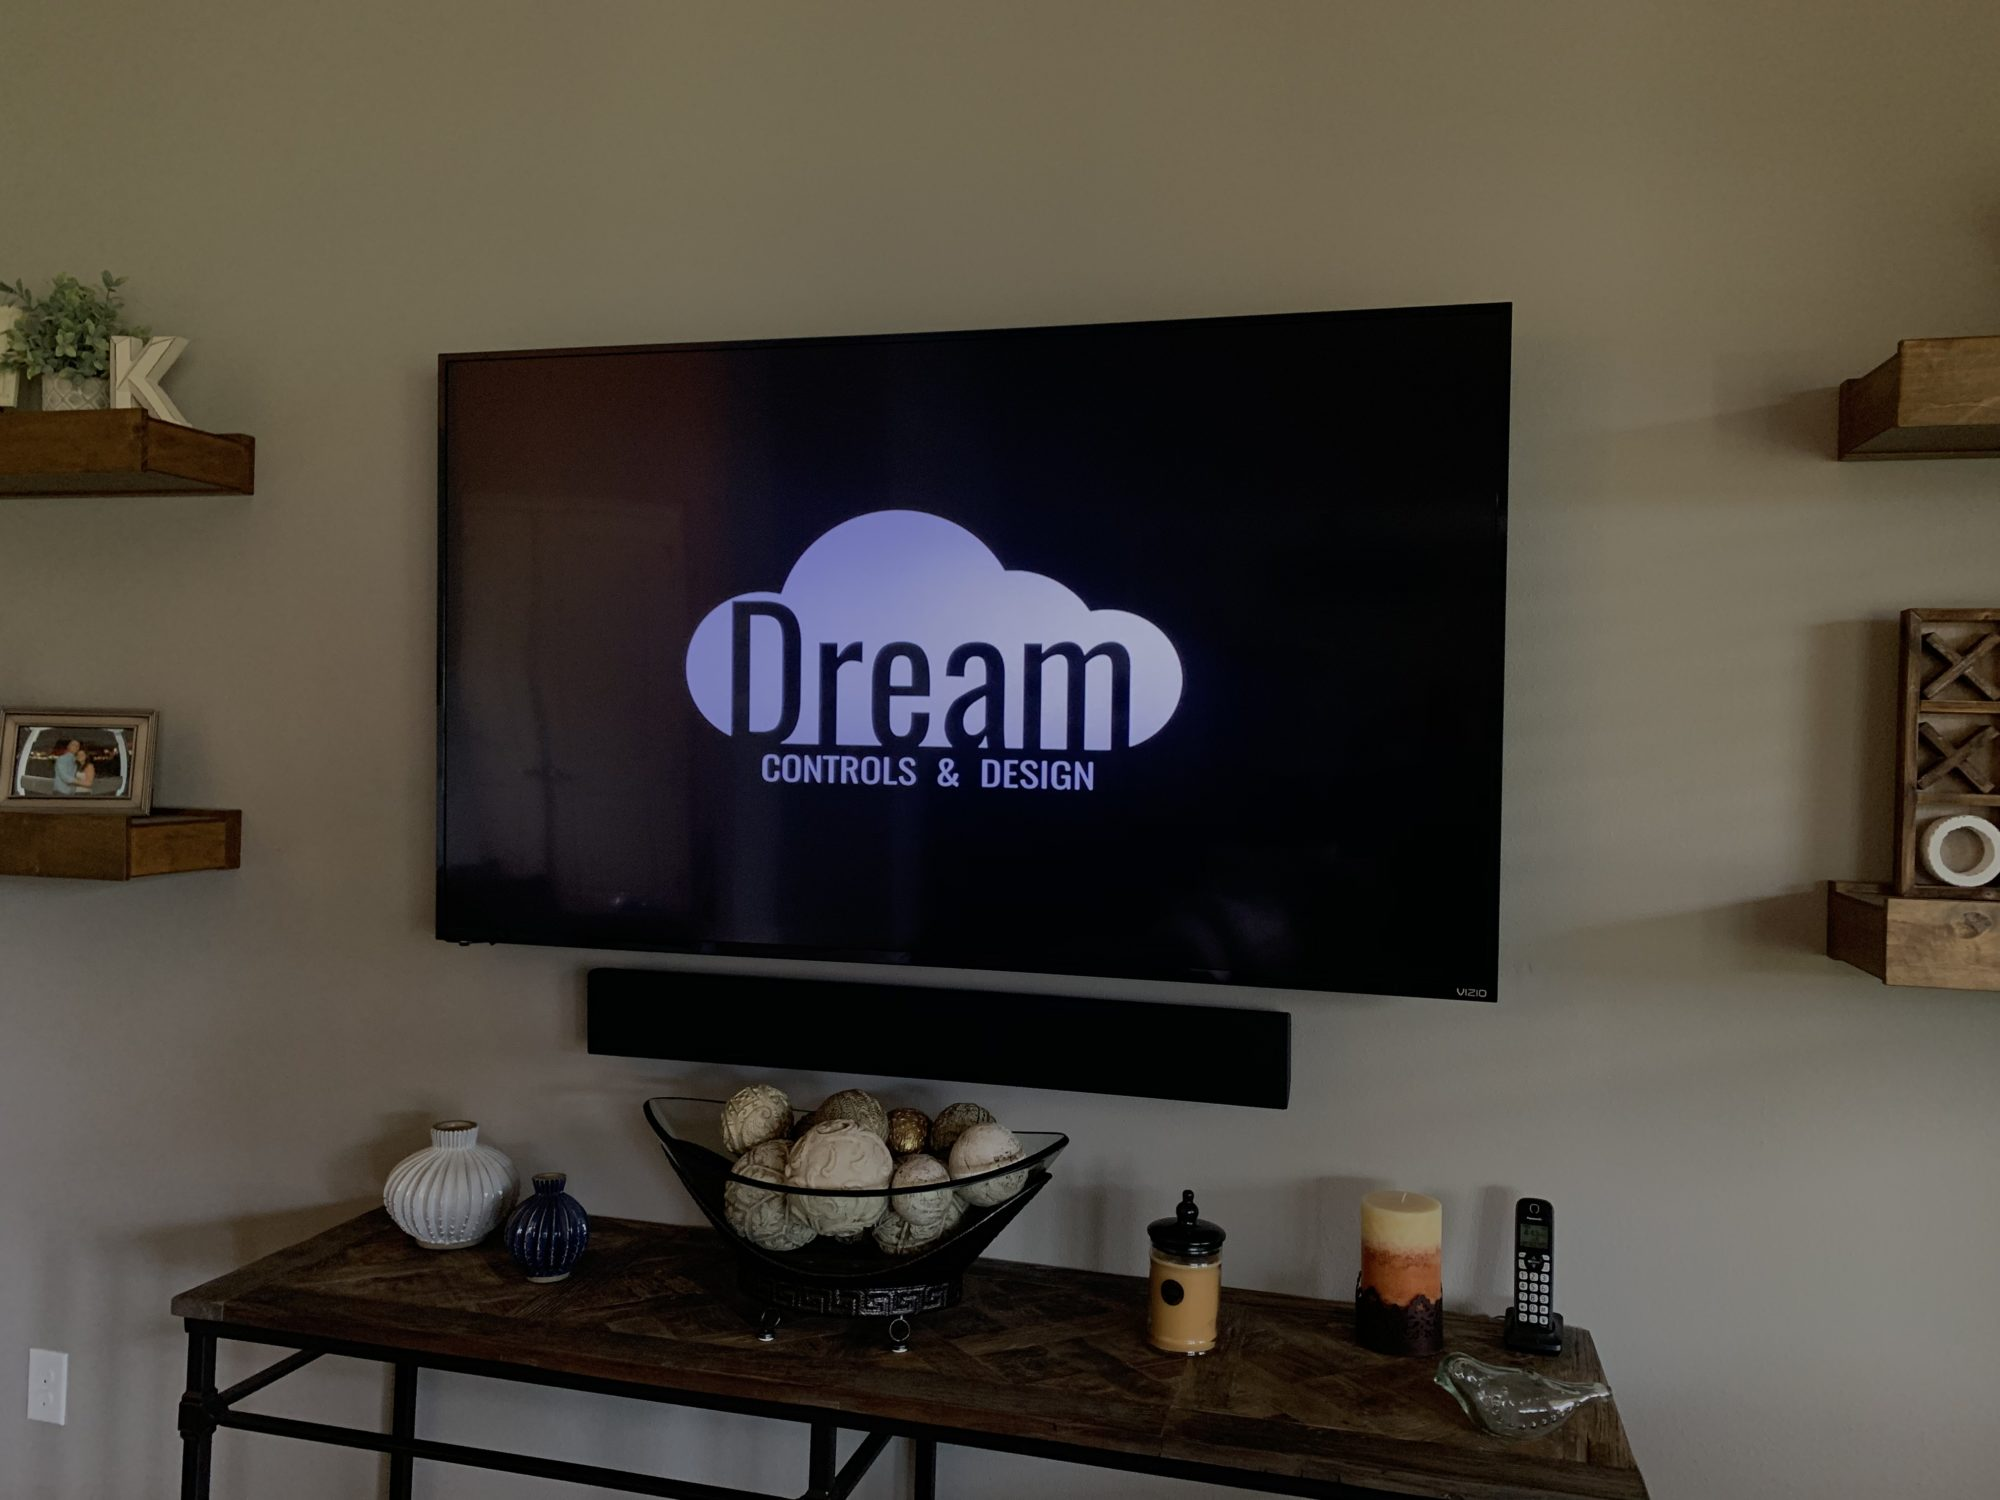 Photo of a East Orlando, FL Estate TV and sound bar installed by Dream Controls & Design